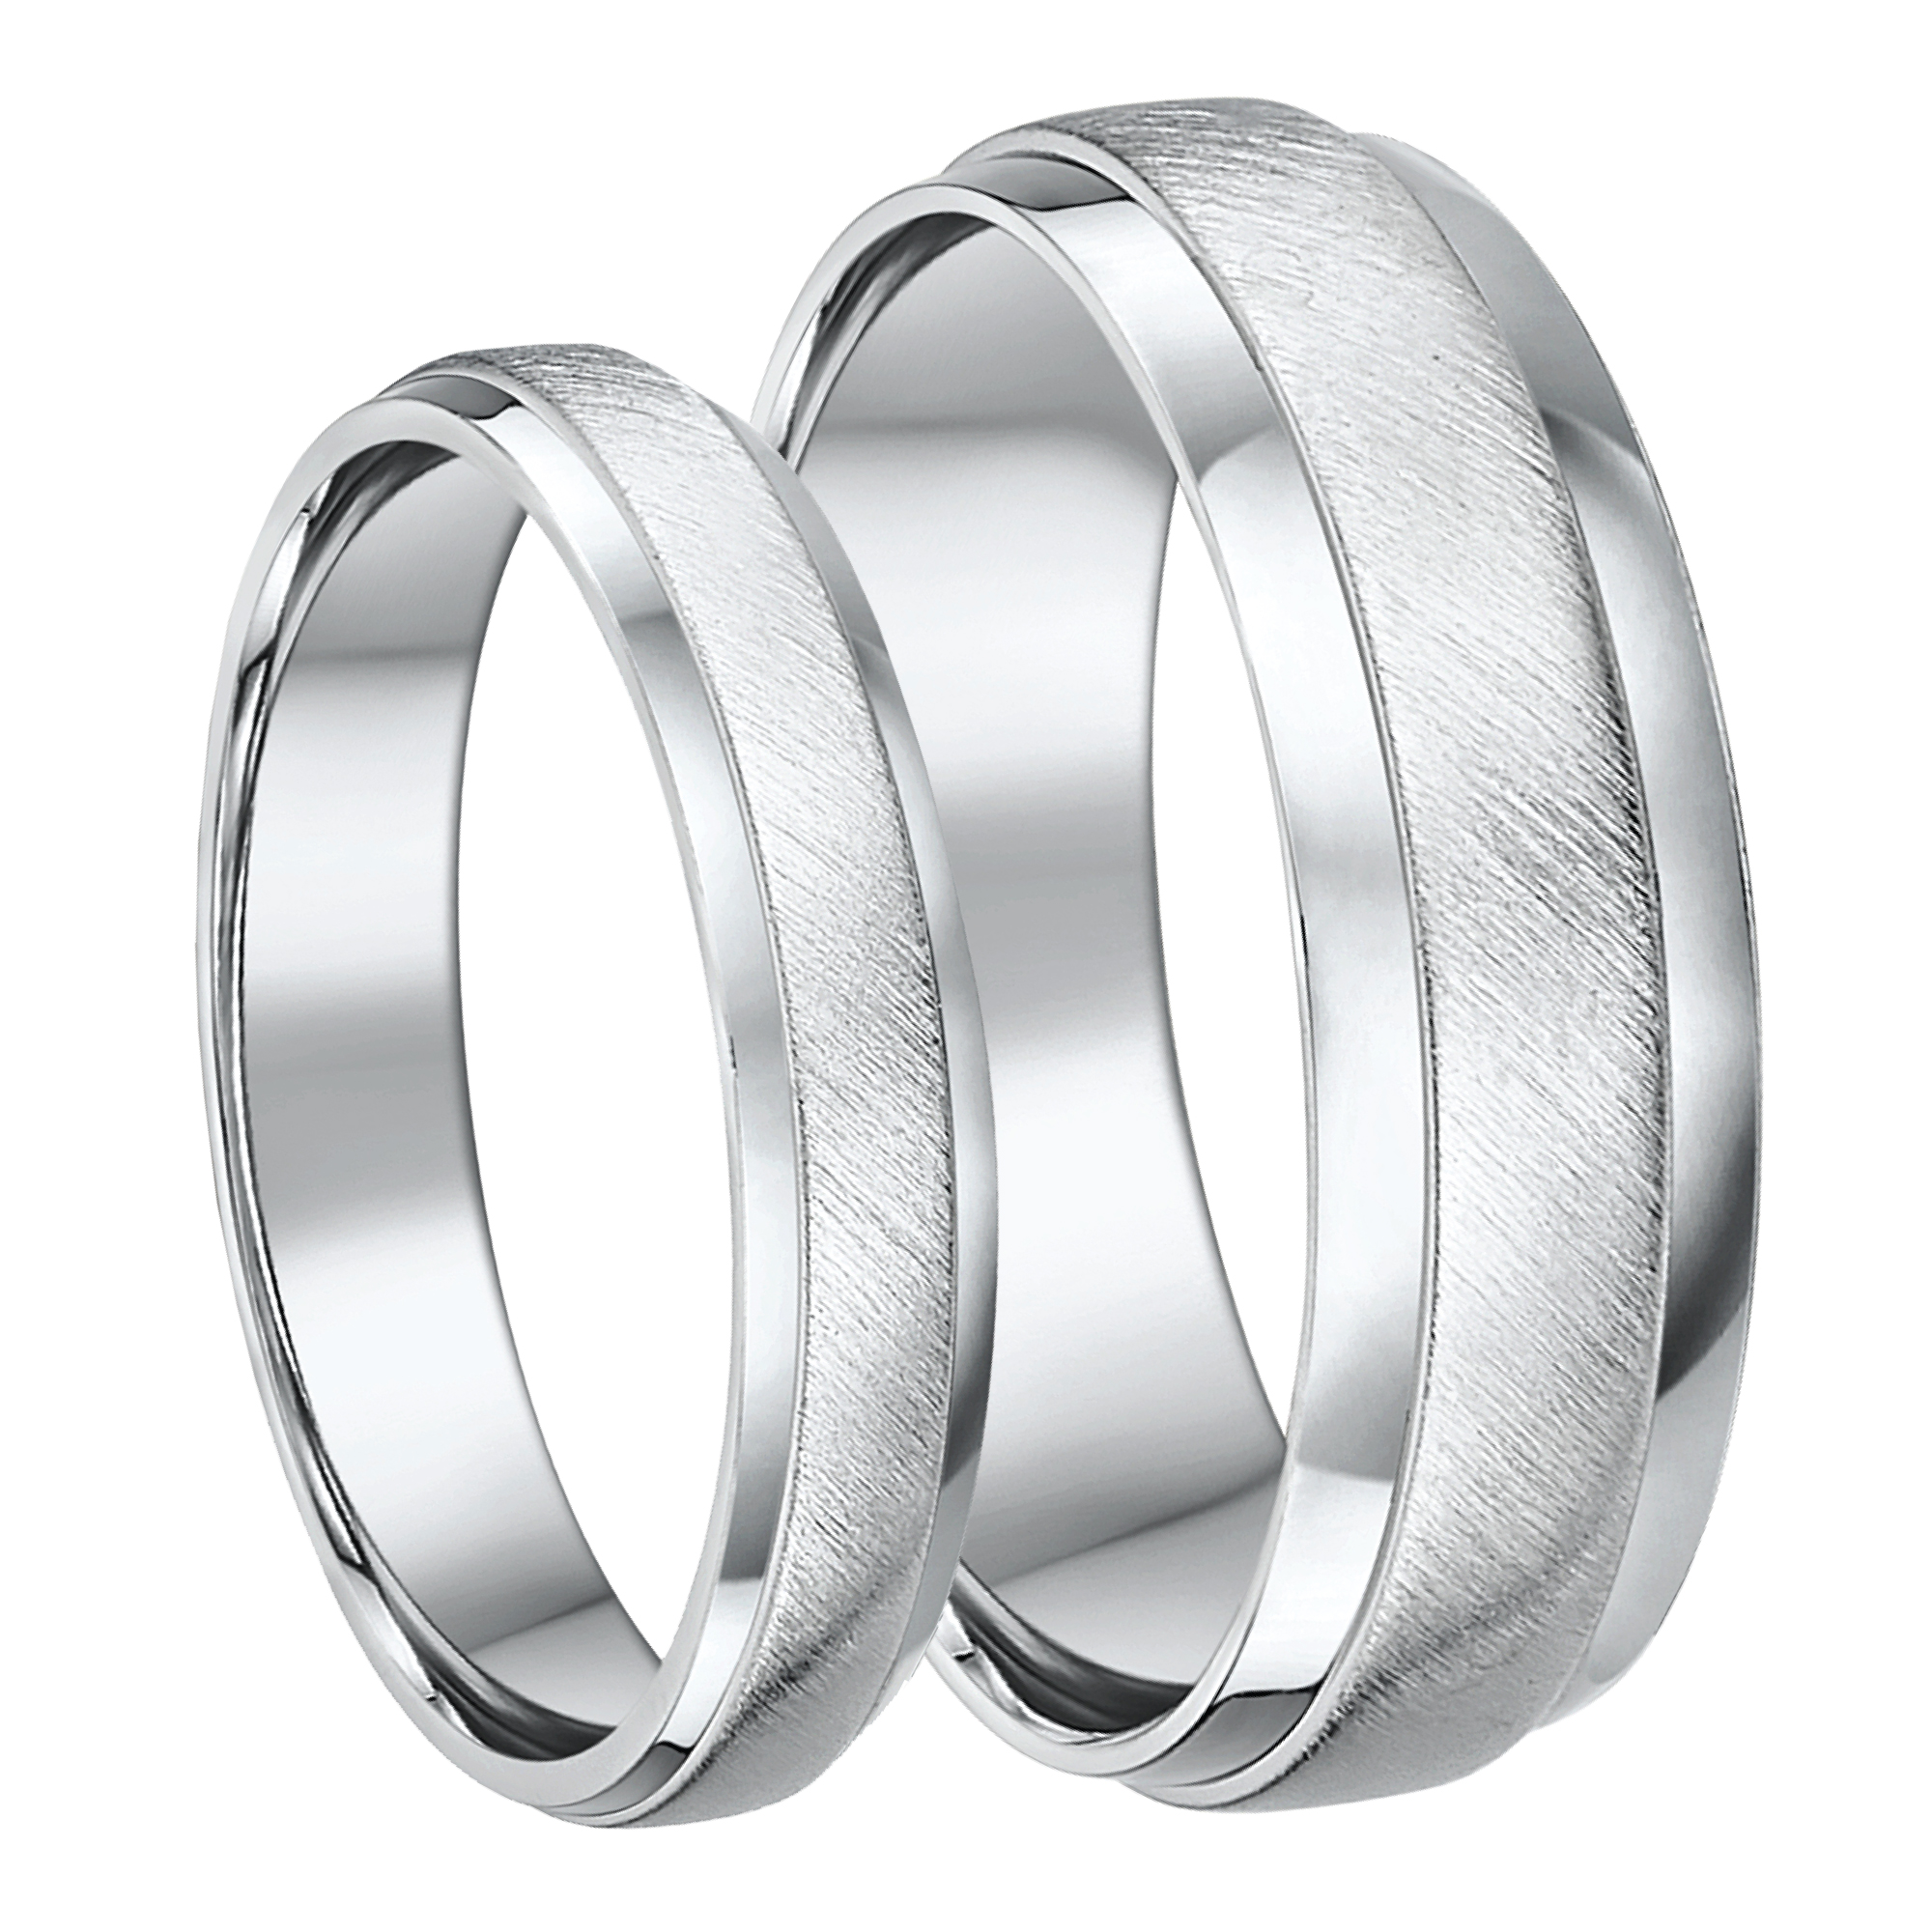 Sterling Silver Wedding Bands.Matching Silver Wedding Ring Sets For Him And Her